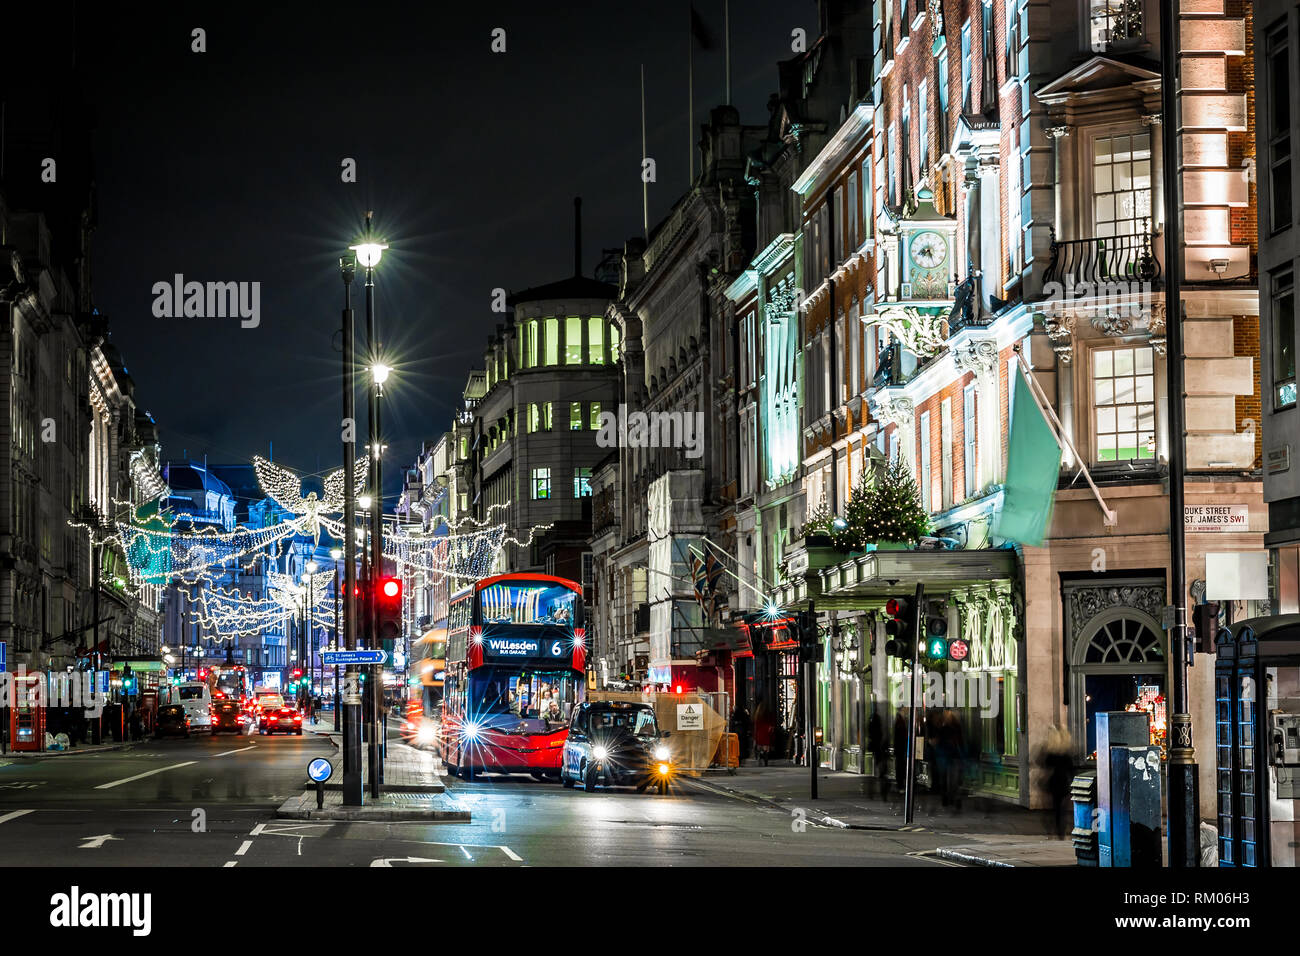 Picadilly decorated for Christmas, London, UK - Stock Image